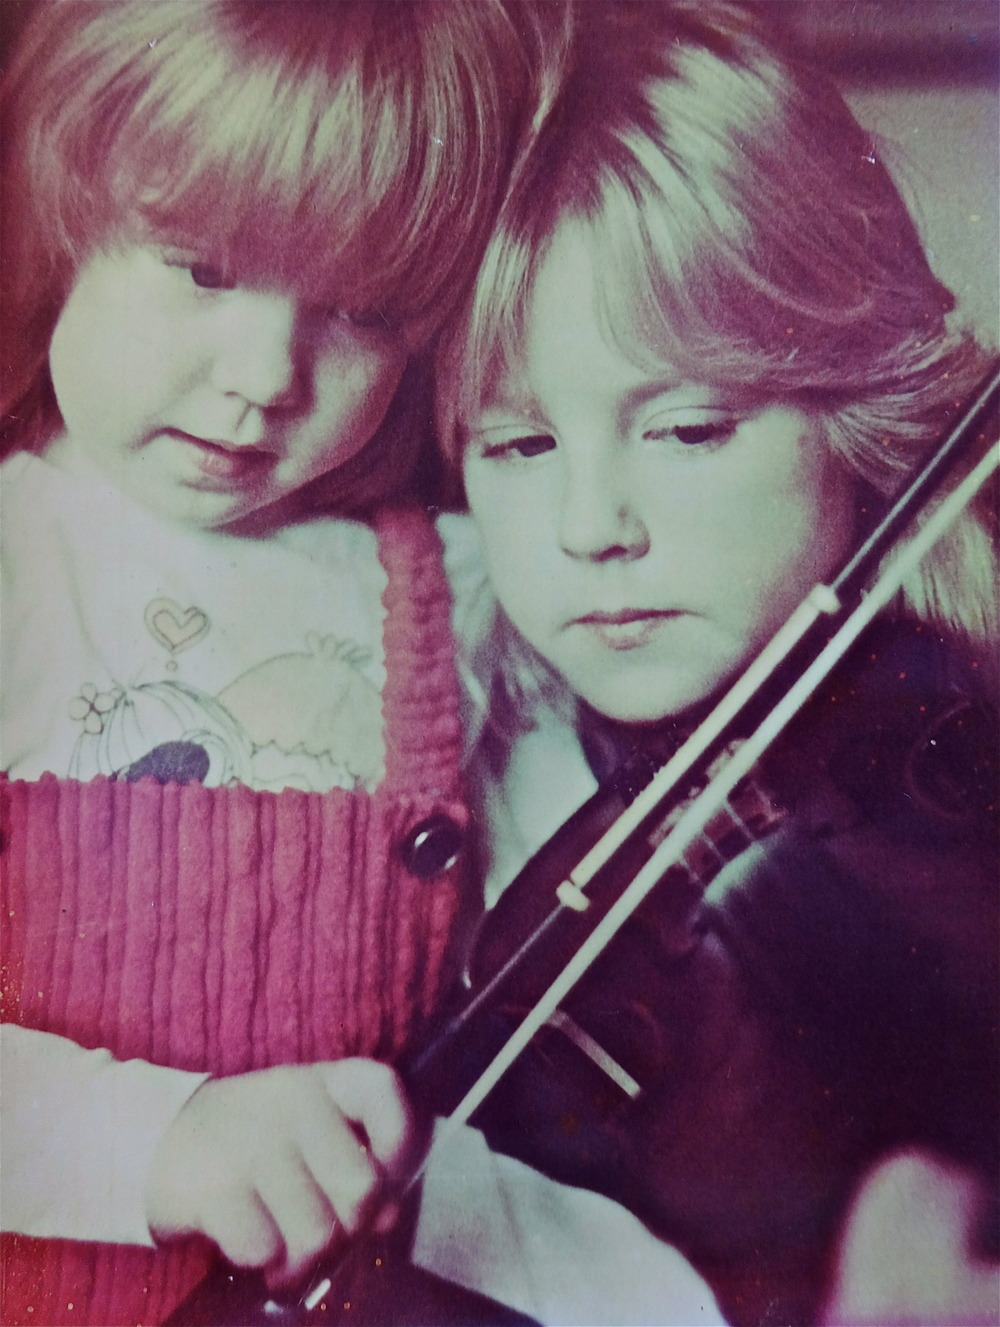 TWO HEADED FIDDLER - Not only is this an audience favorite, but it is a useful teaching tool that allows beginners to focus on one hand at a time. I tell my young ones to share a fiddle and a hug with their practice buddy at home.To fancy things up, players can using various